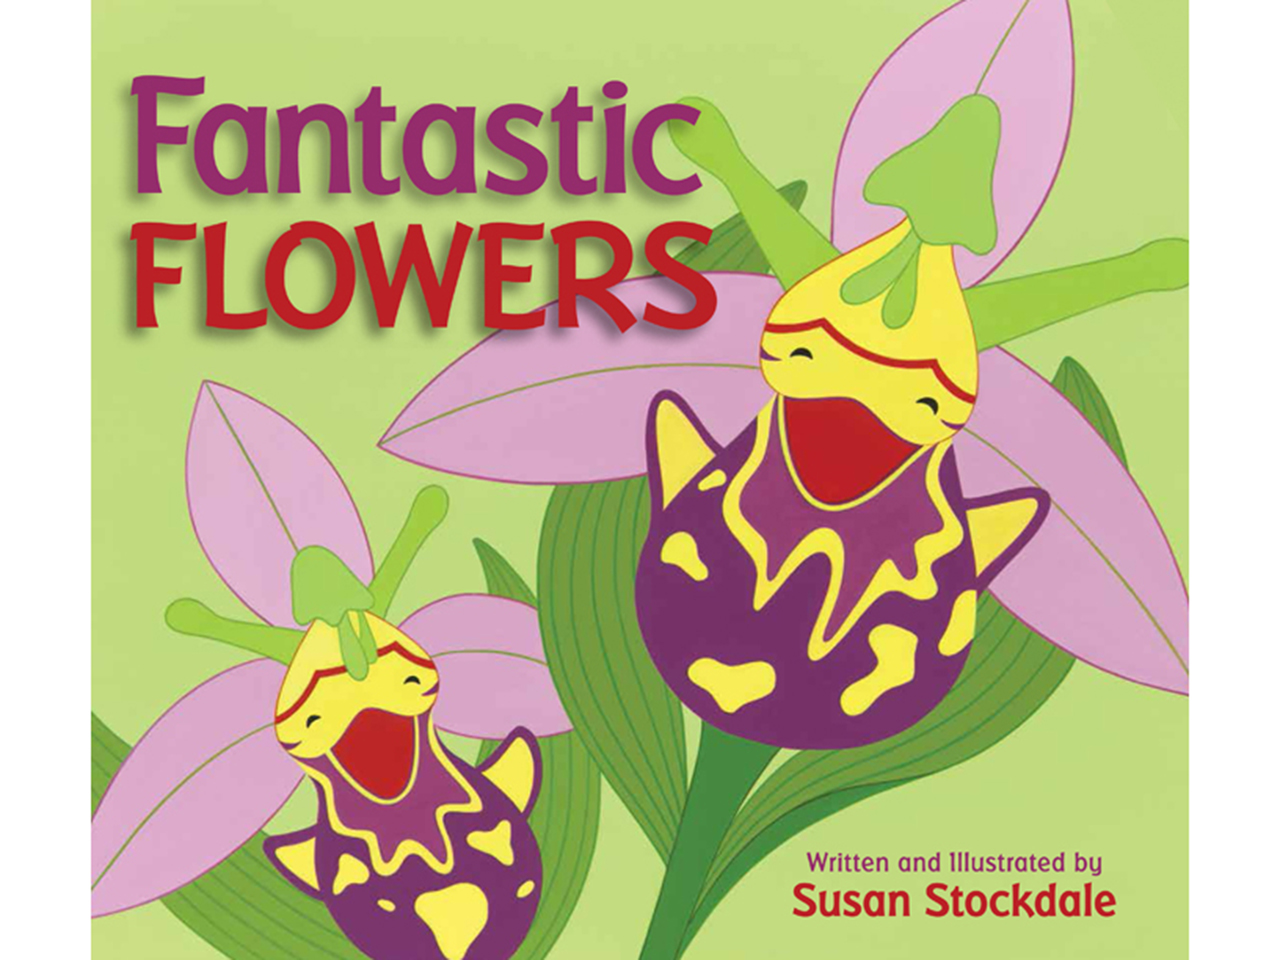 Fantastic Flowers book cover